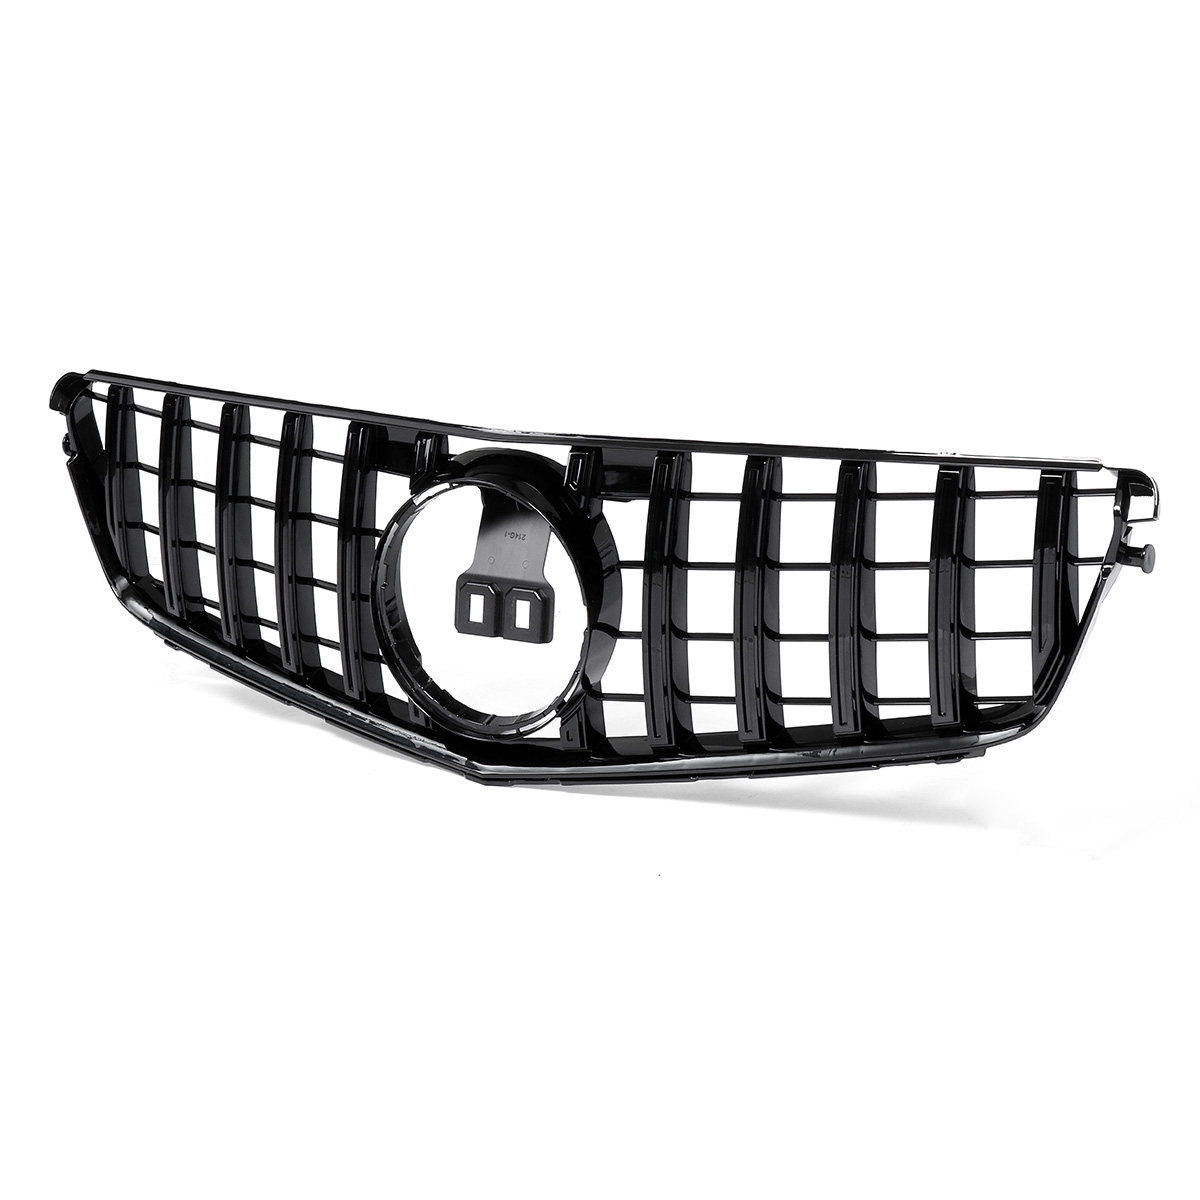 Car GTR style Silver Grille Front Bumper Grill for